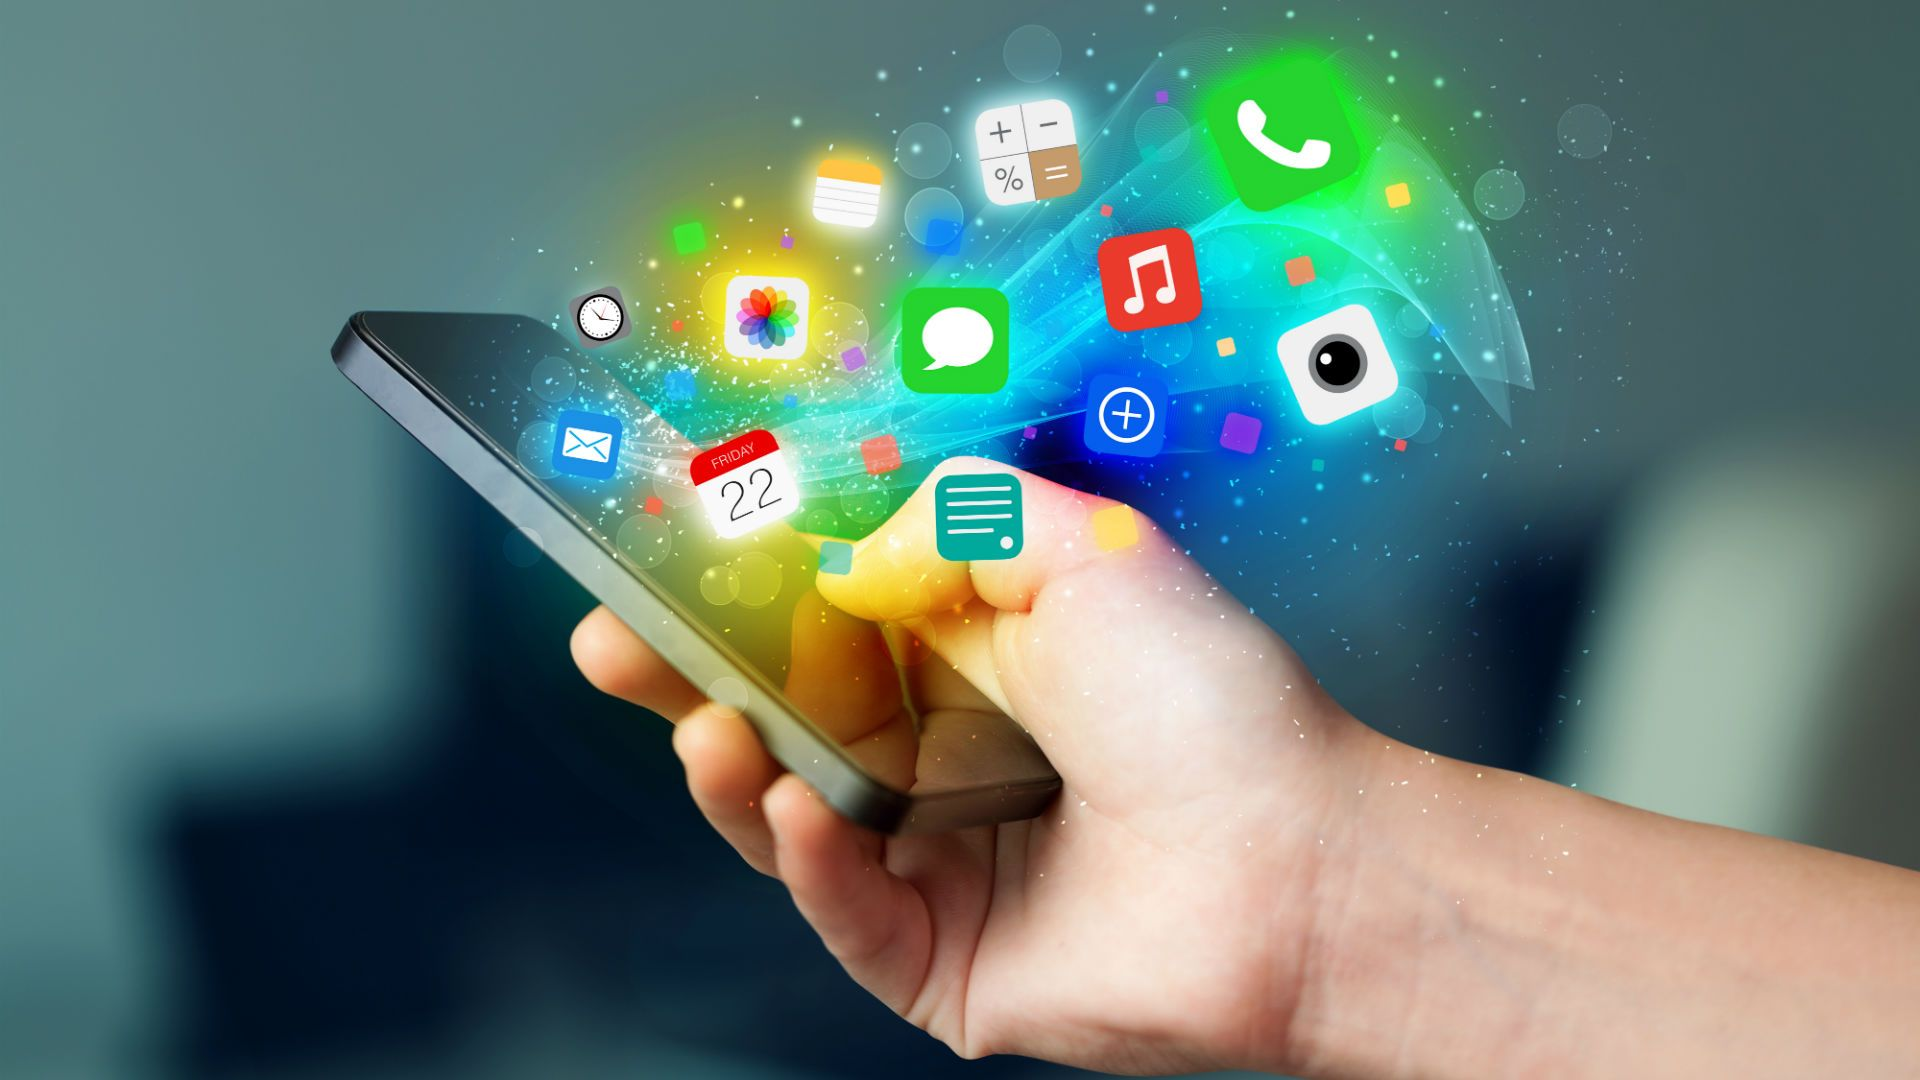 The mobile app developers will generate a huge change